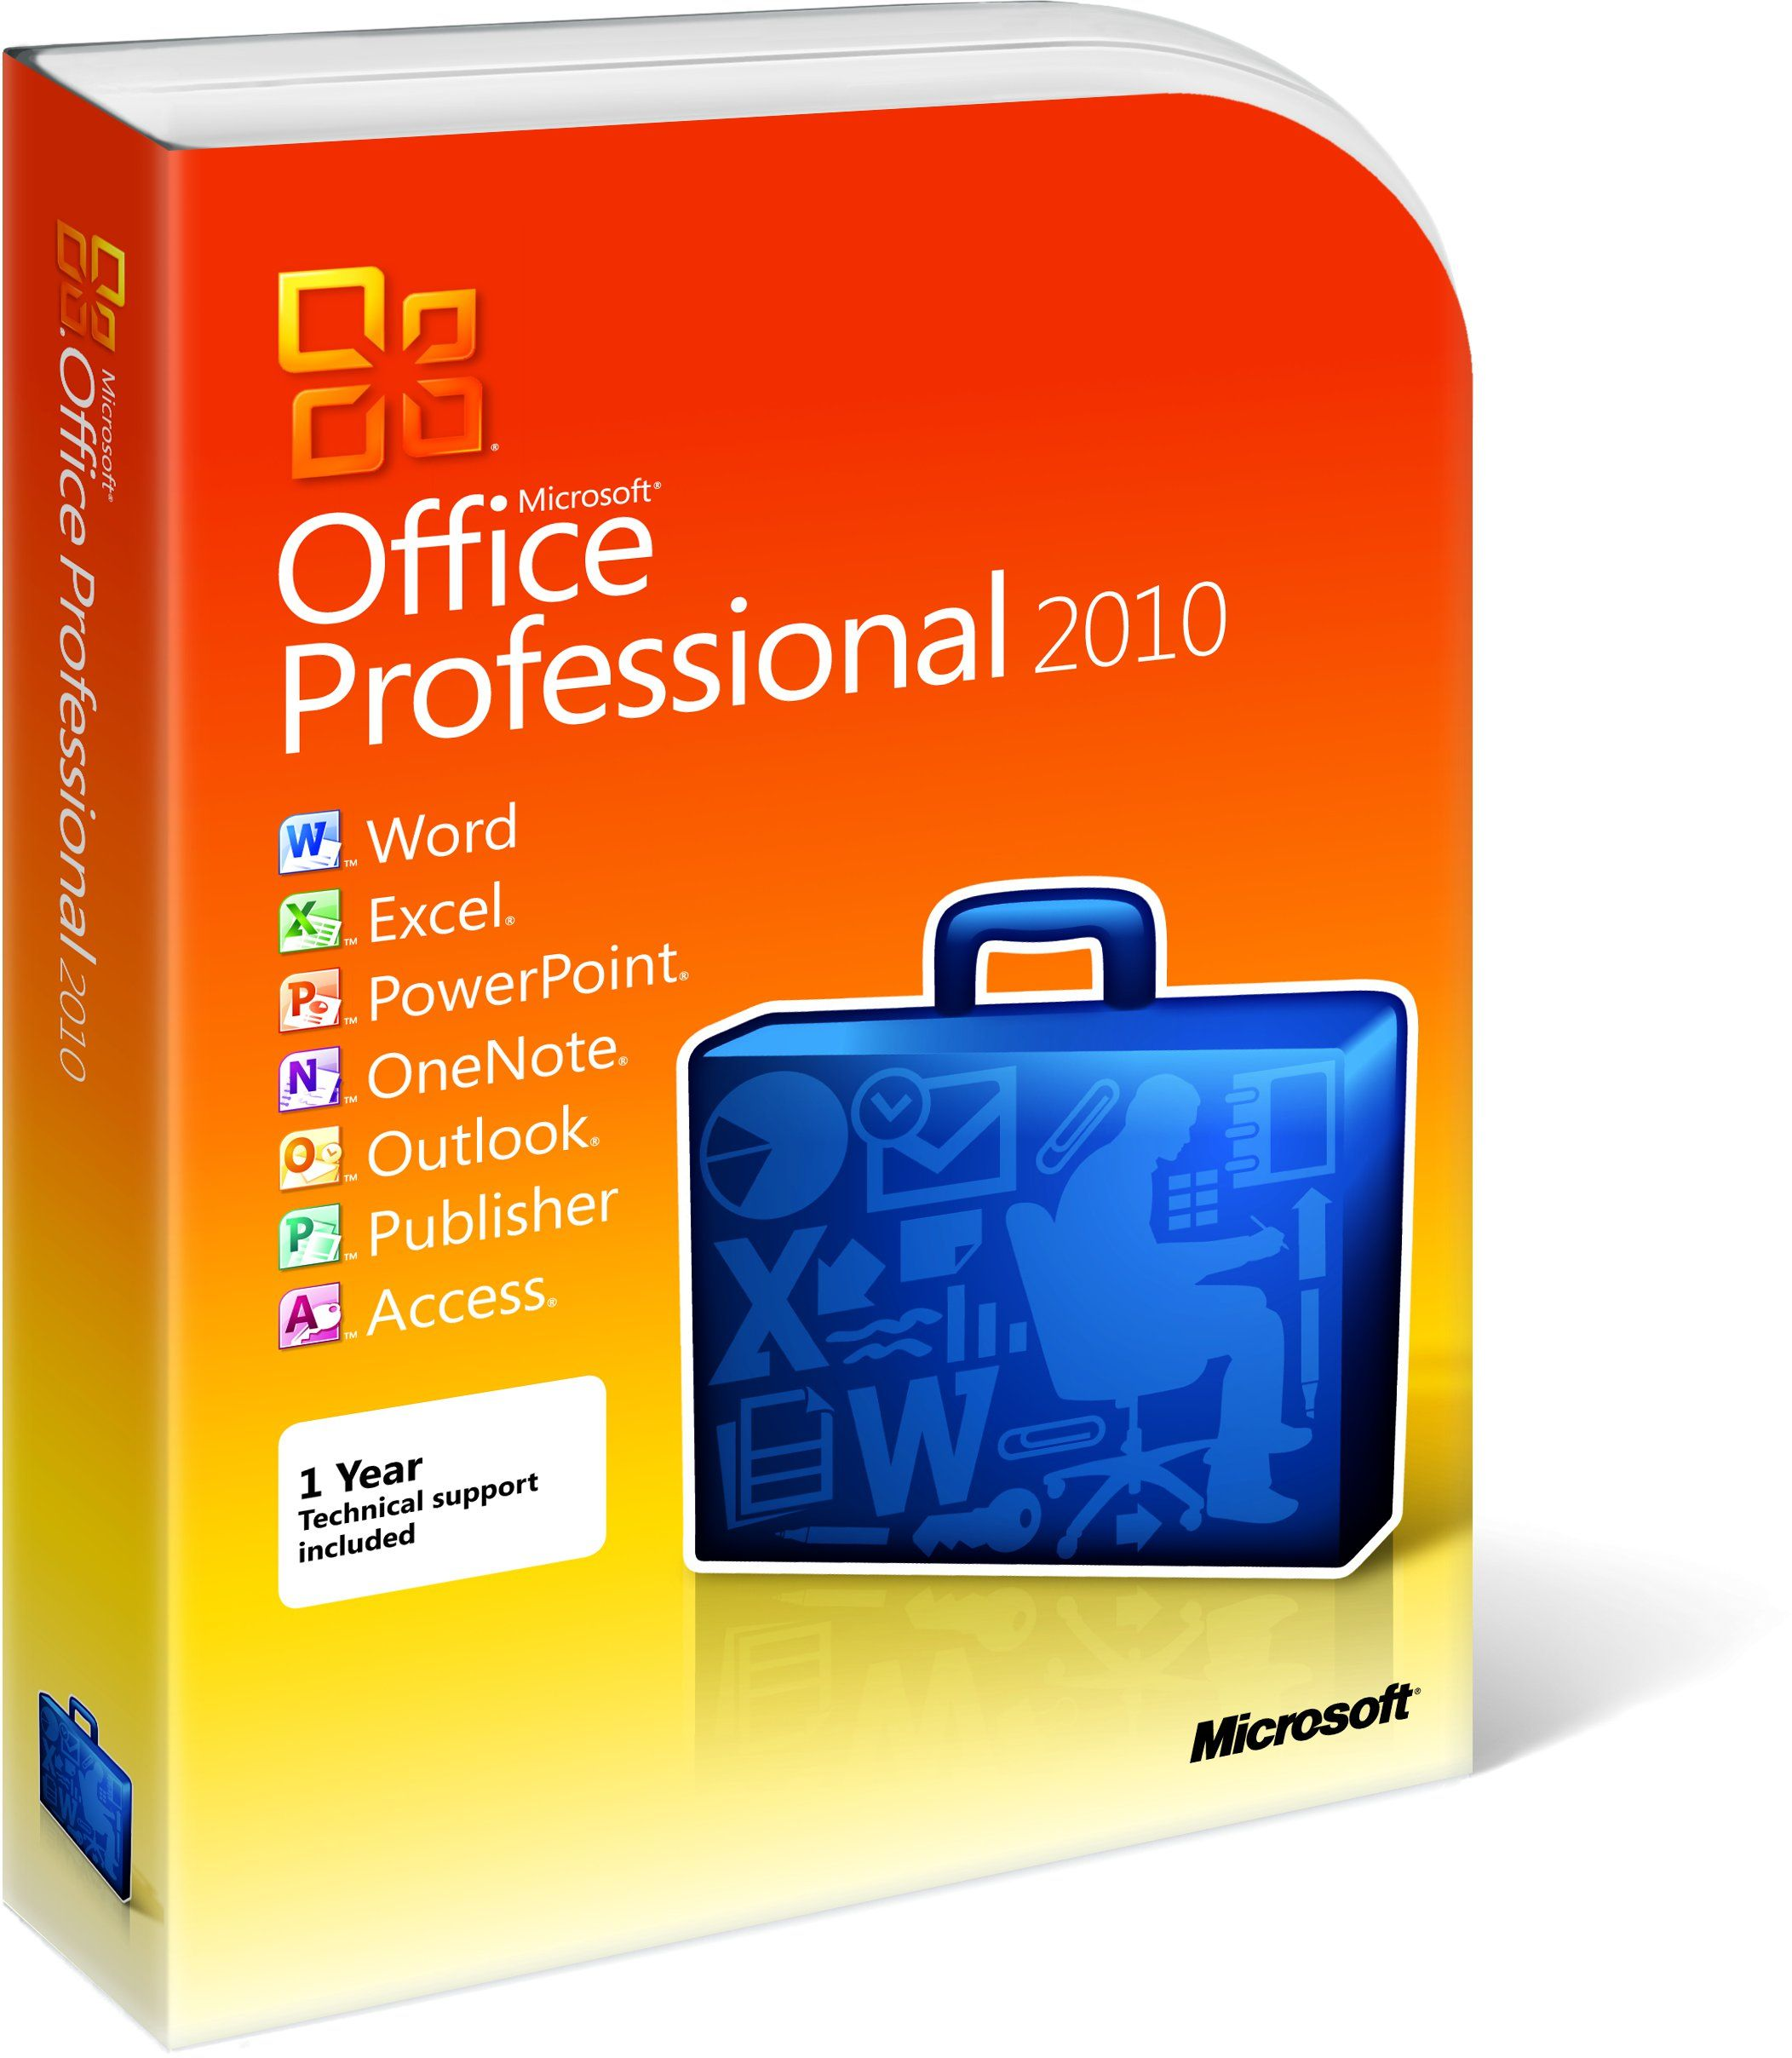 MS Office 2010 Product Key Generator Full Version Free Download